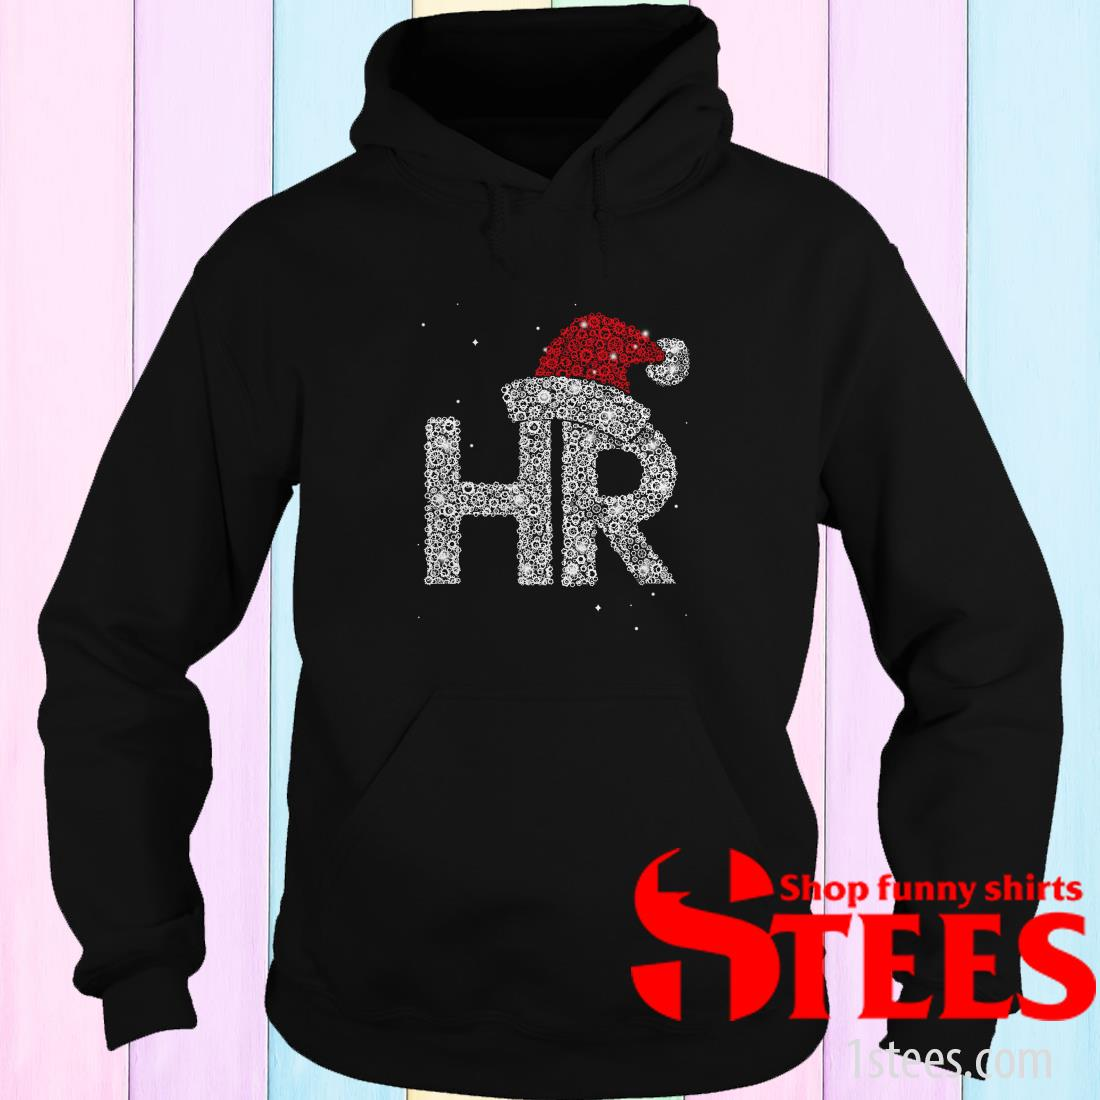 Santa HR Human Resources Diamond Christmas Sweatshirt